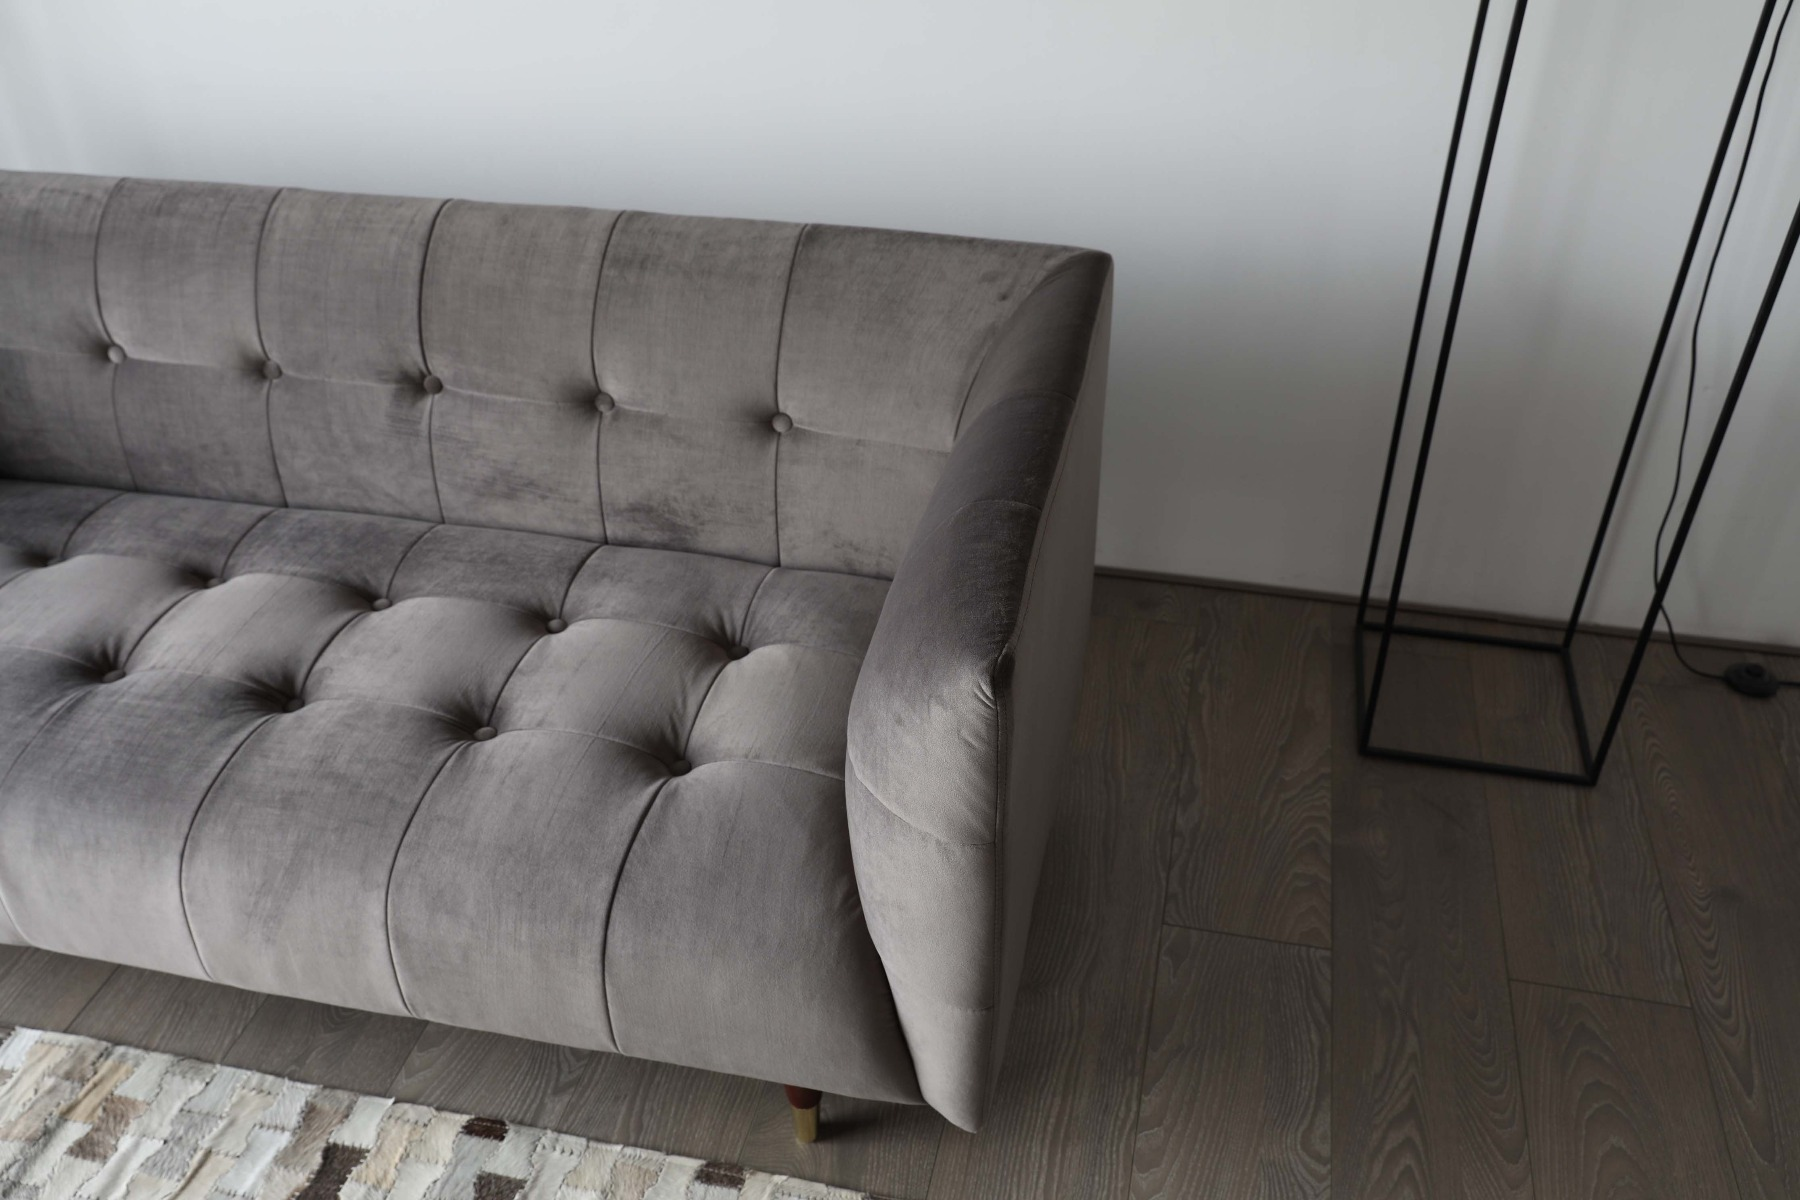 Clean lines and firm yet agreeable armrests will make a lasting impression.